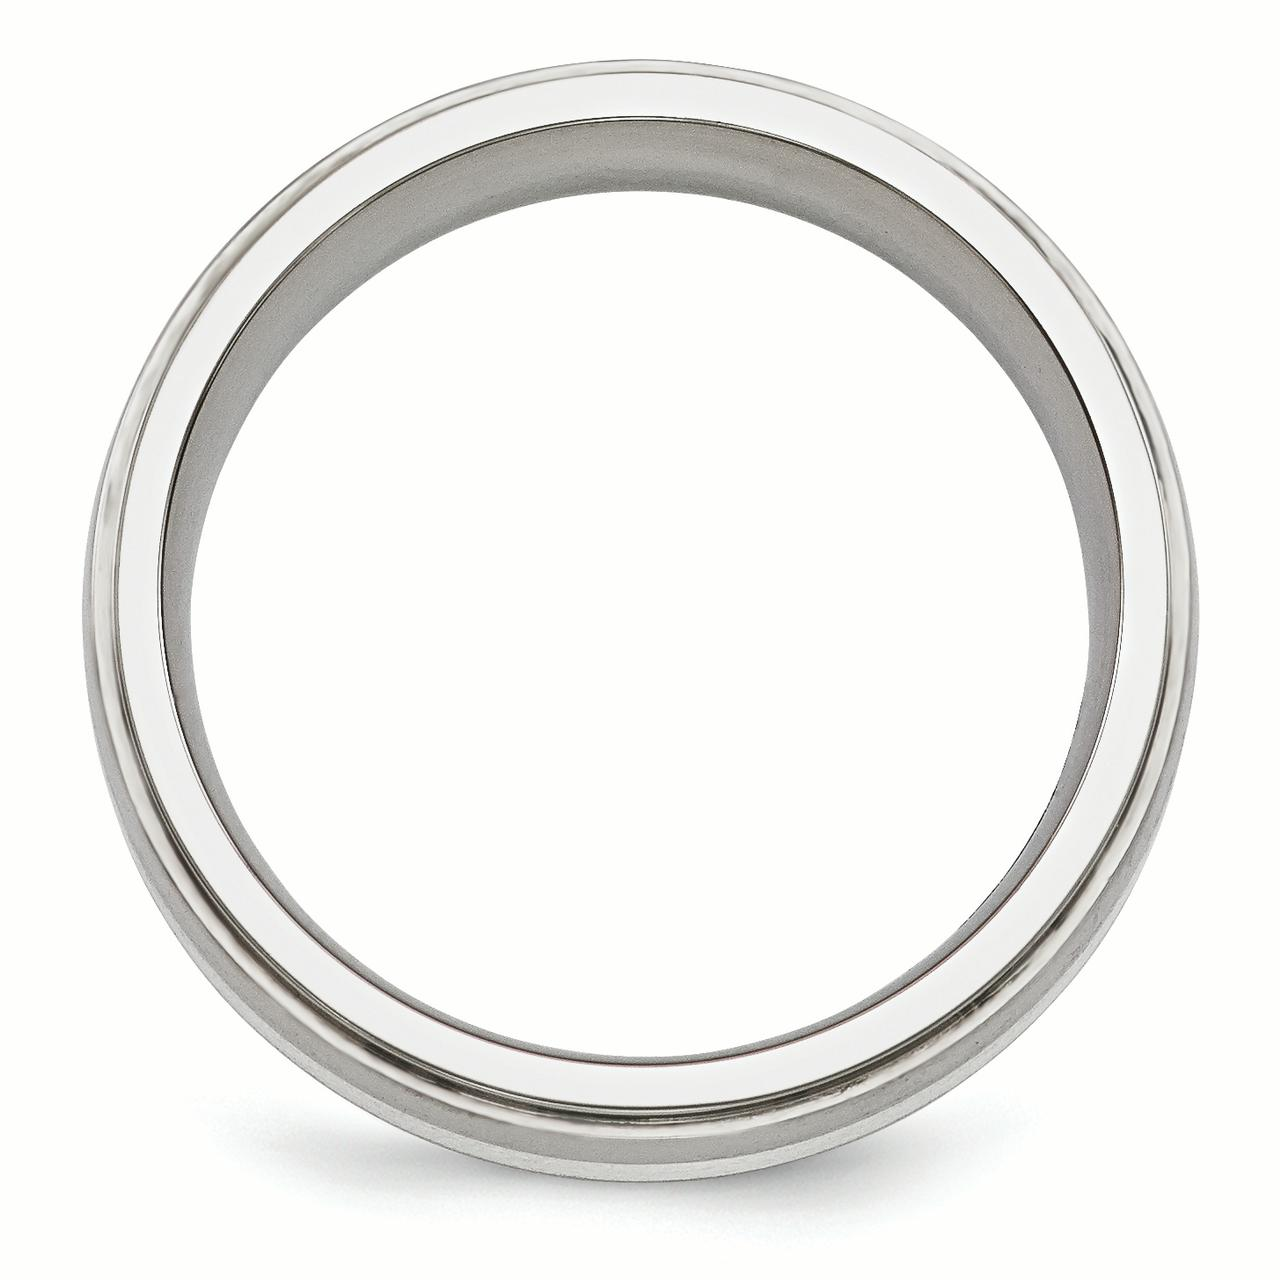 Edward Mirell Titanium Brushed&Polished w/Sterling Silver 7mm Band Size 10.5 - image 2 de 3